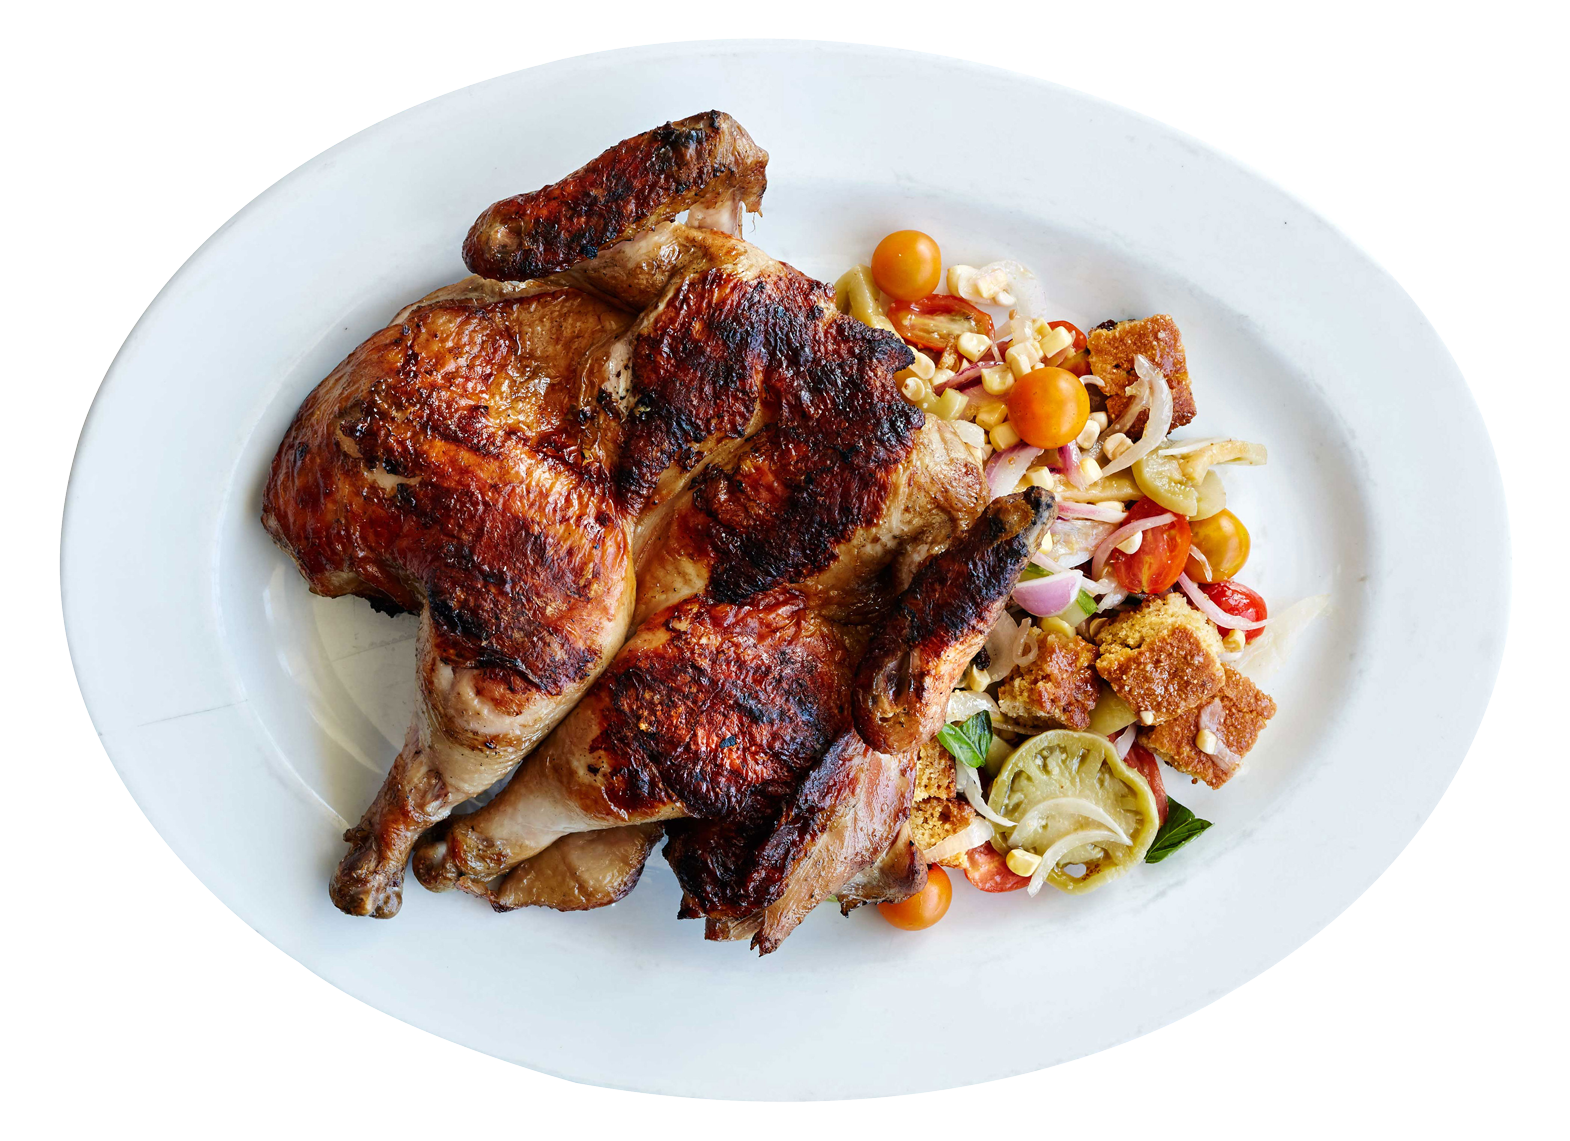 barbecue grill chicken png image pngpix #36412